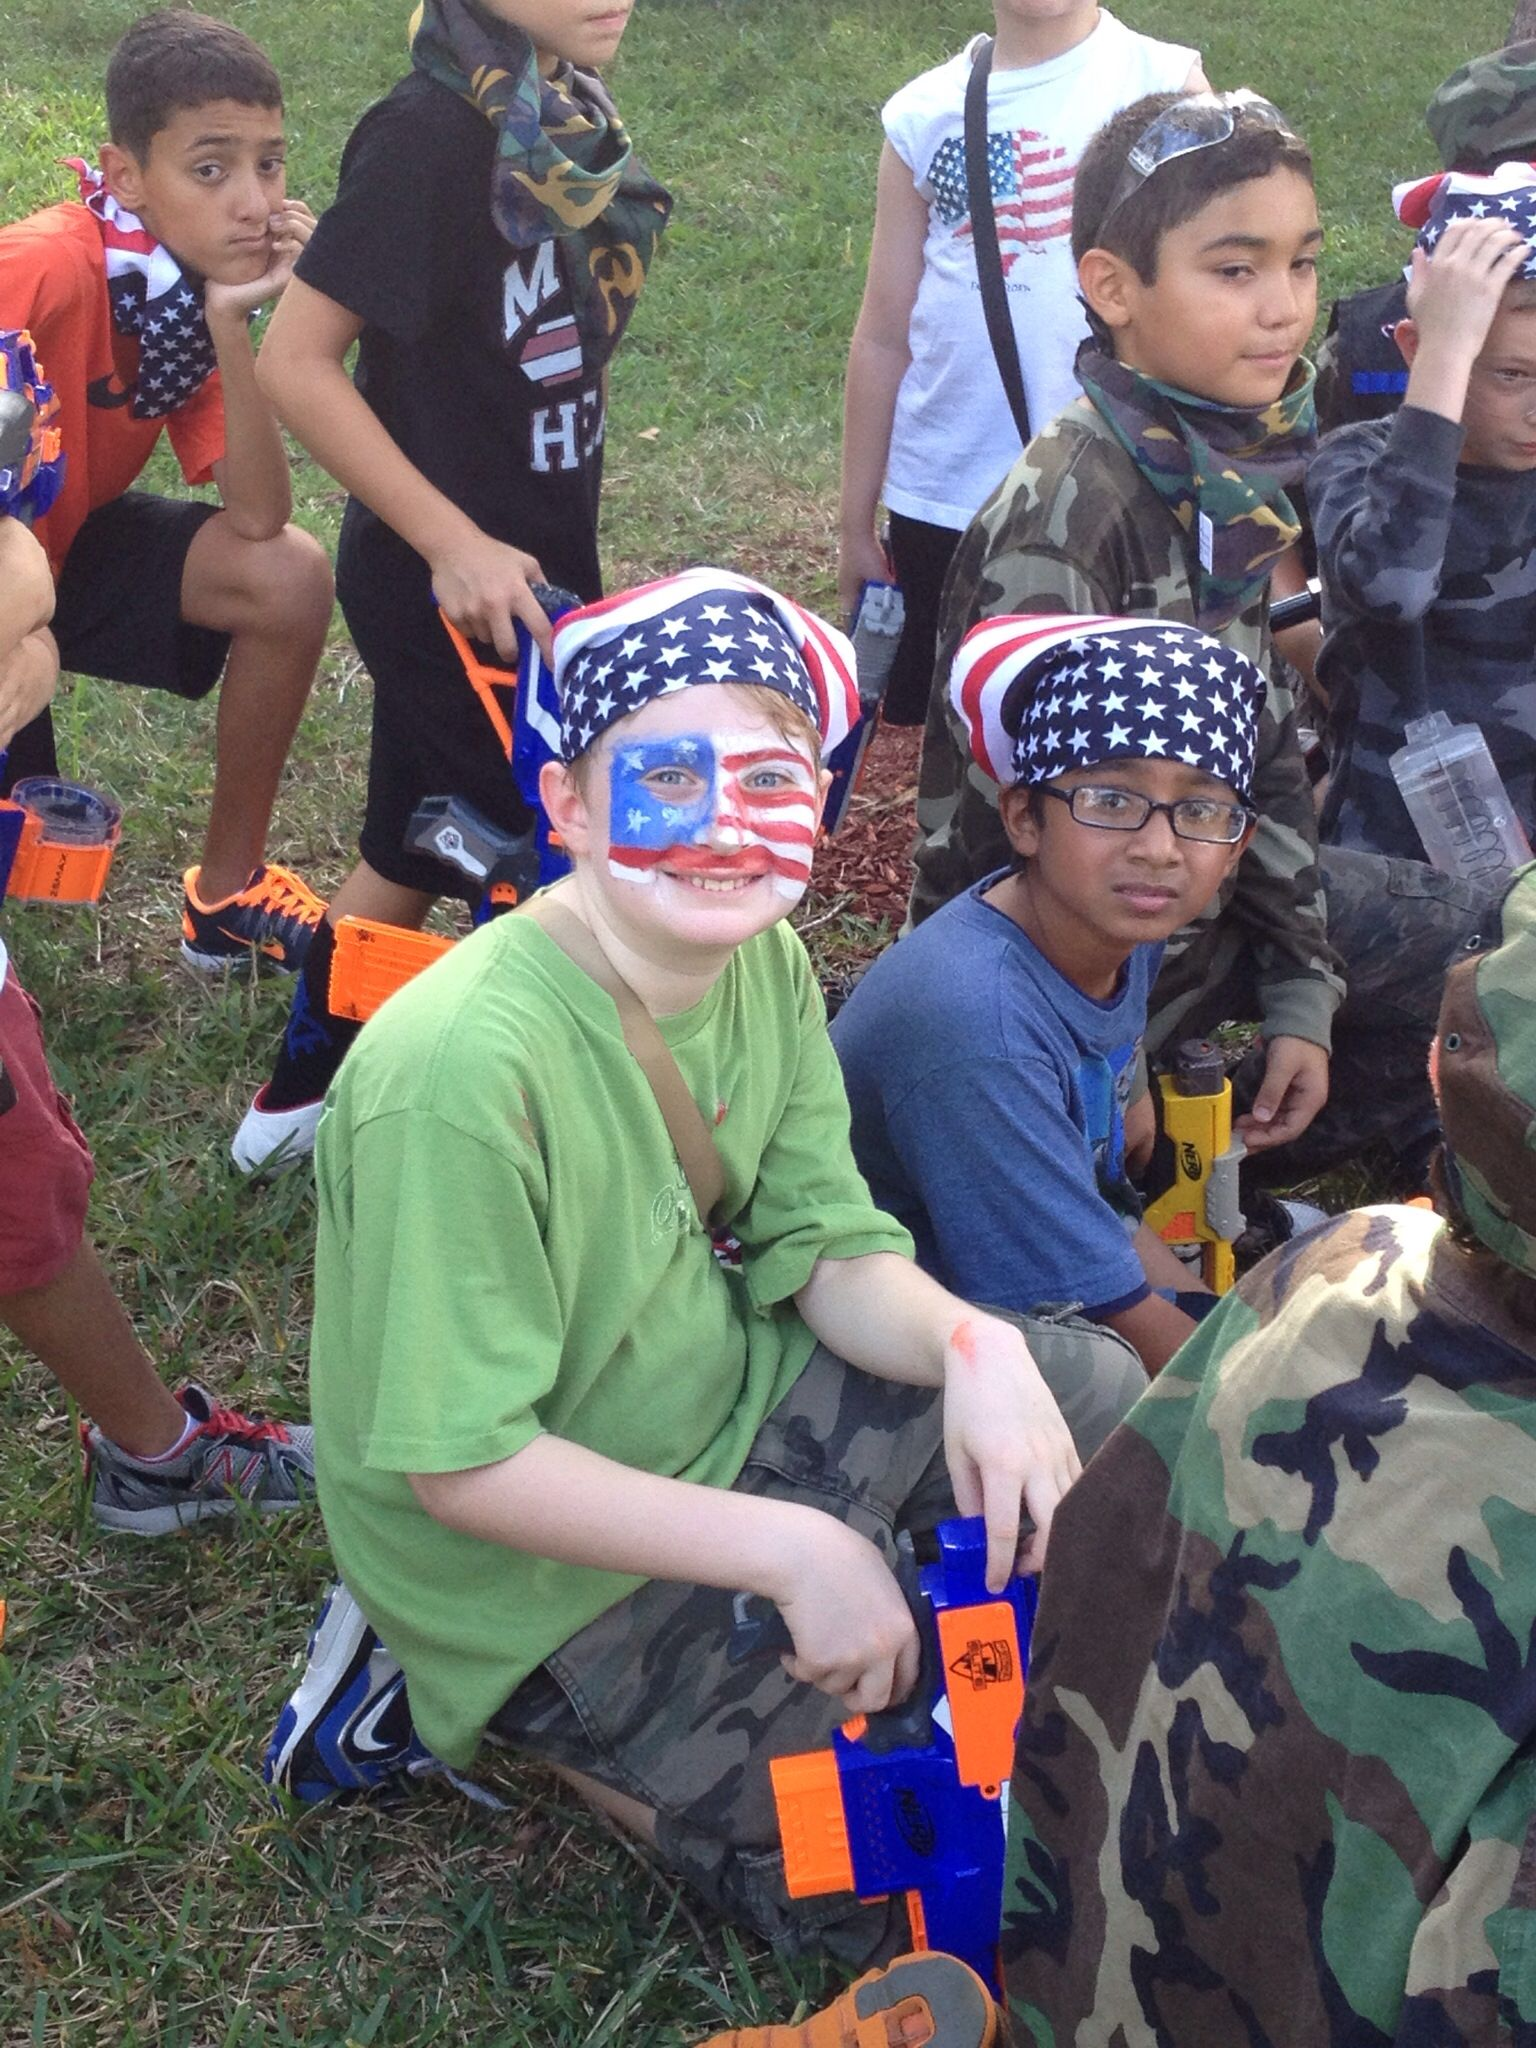 NERF GUN WARS - ready for battle. There were two teams for the capture the